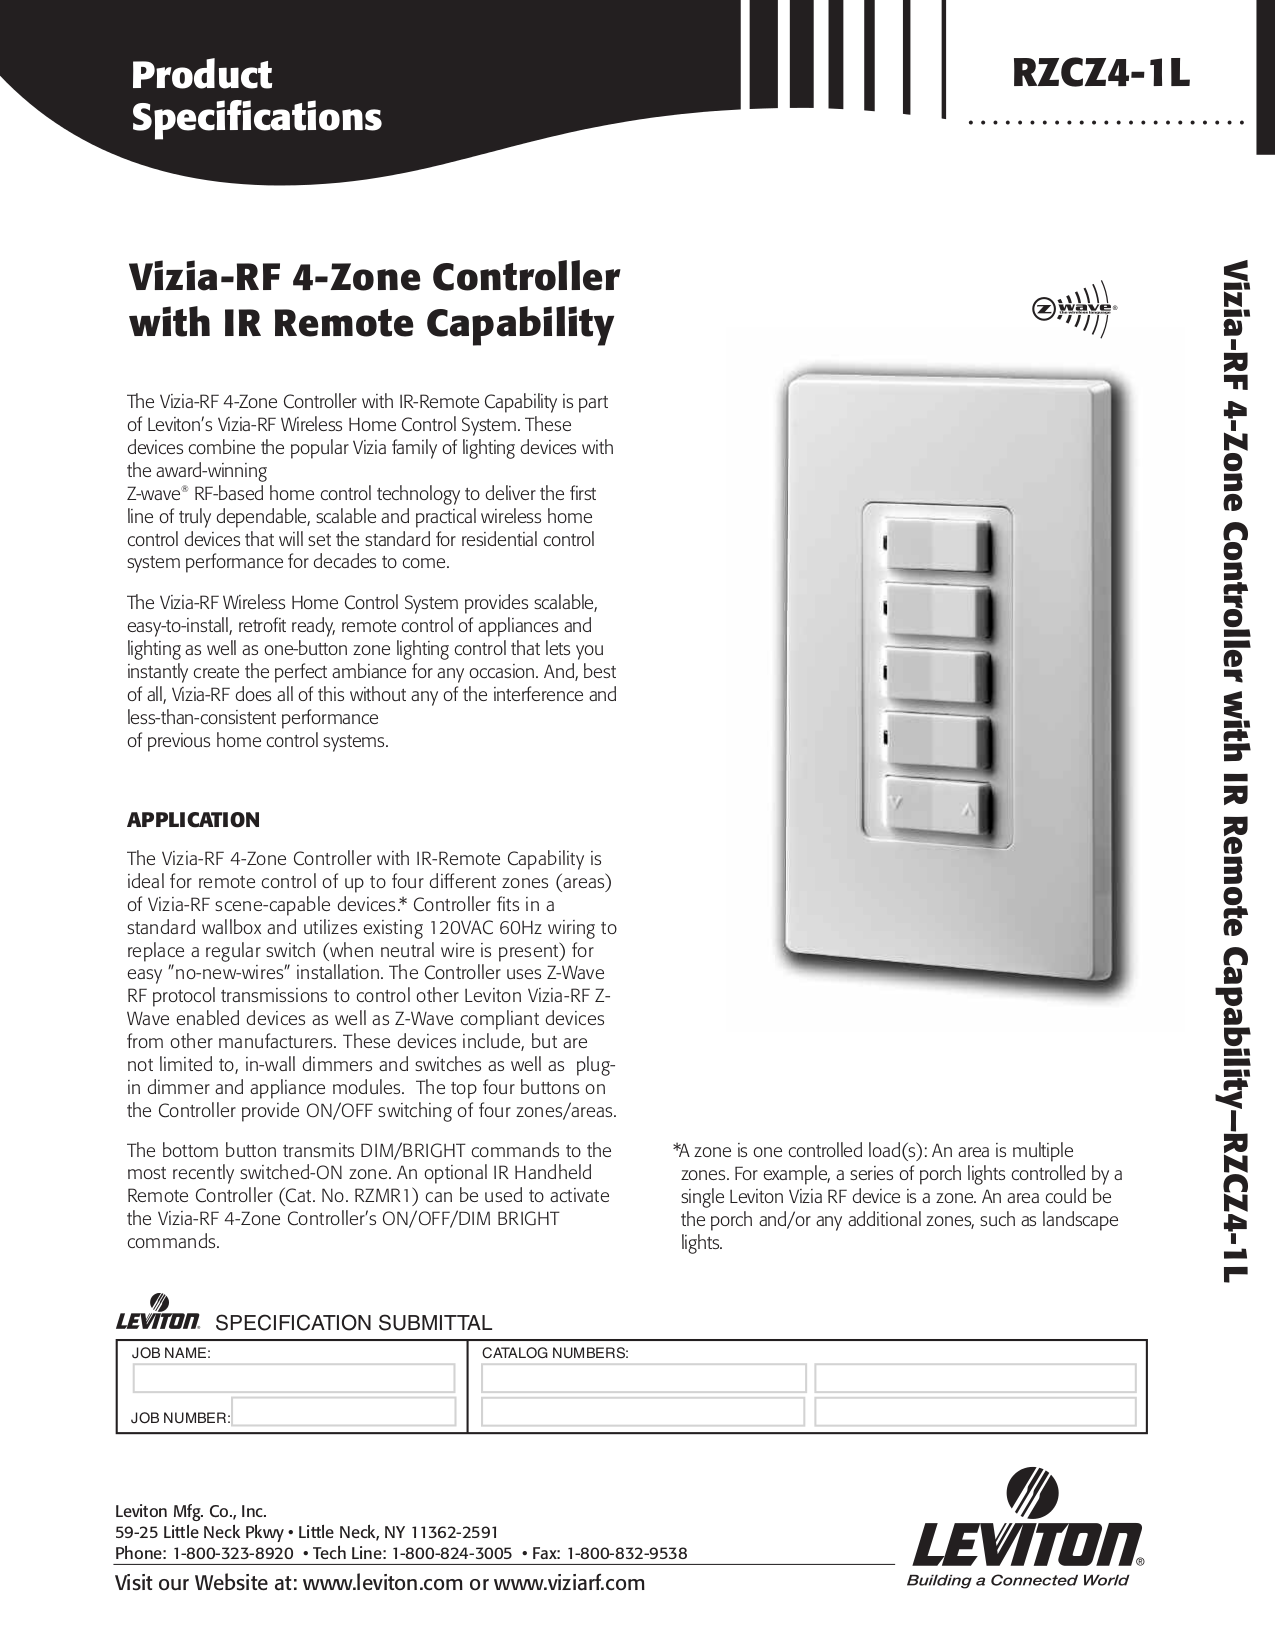 Download free pdf for Leviton RZCZ4 Zone Controller Other manual